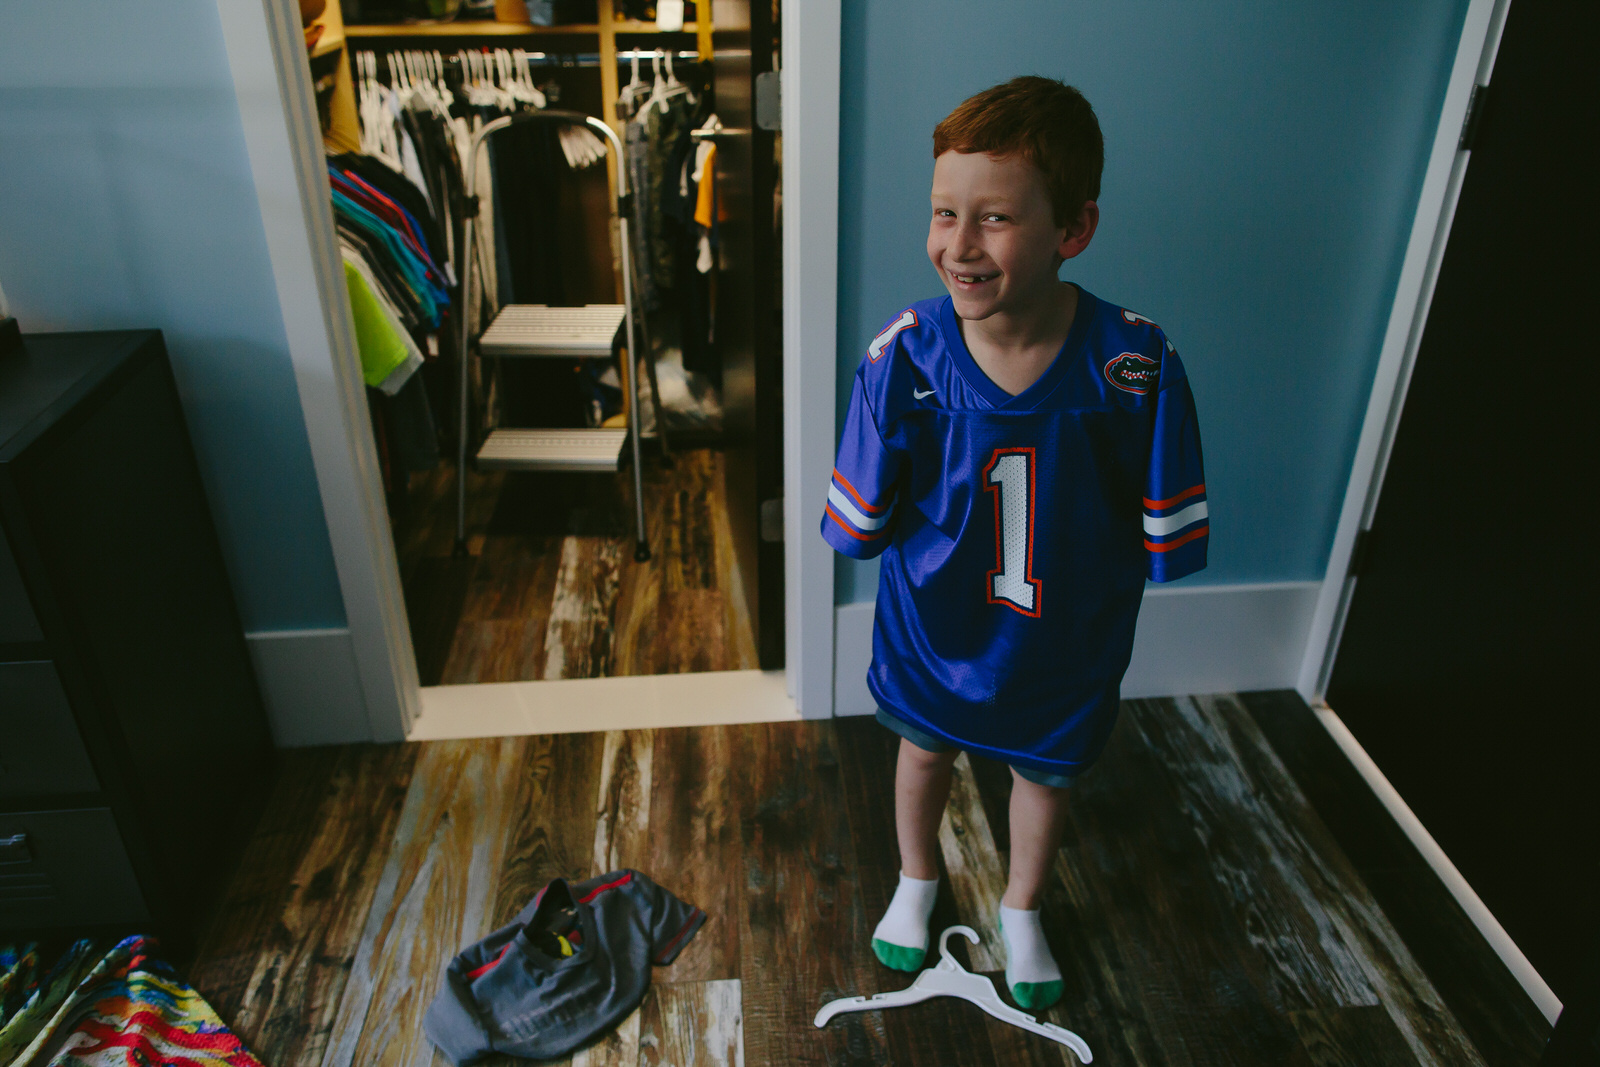 UF_jersey_getting_dressed_family_DITL_colorado.jpg